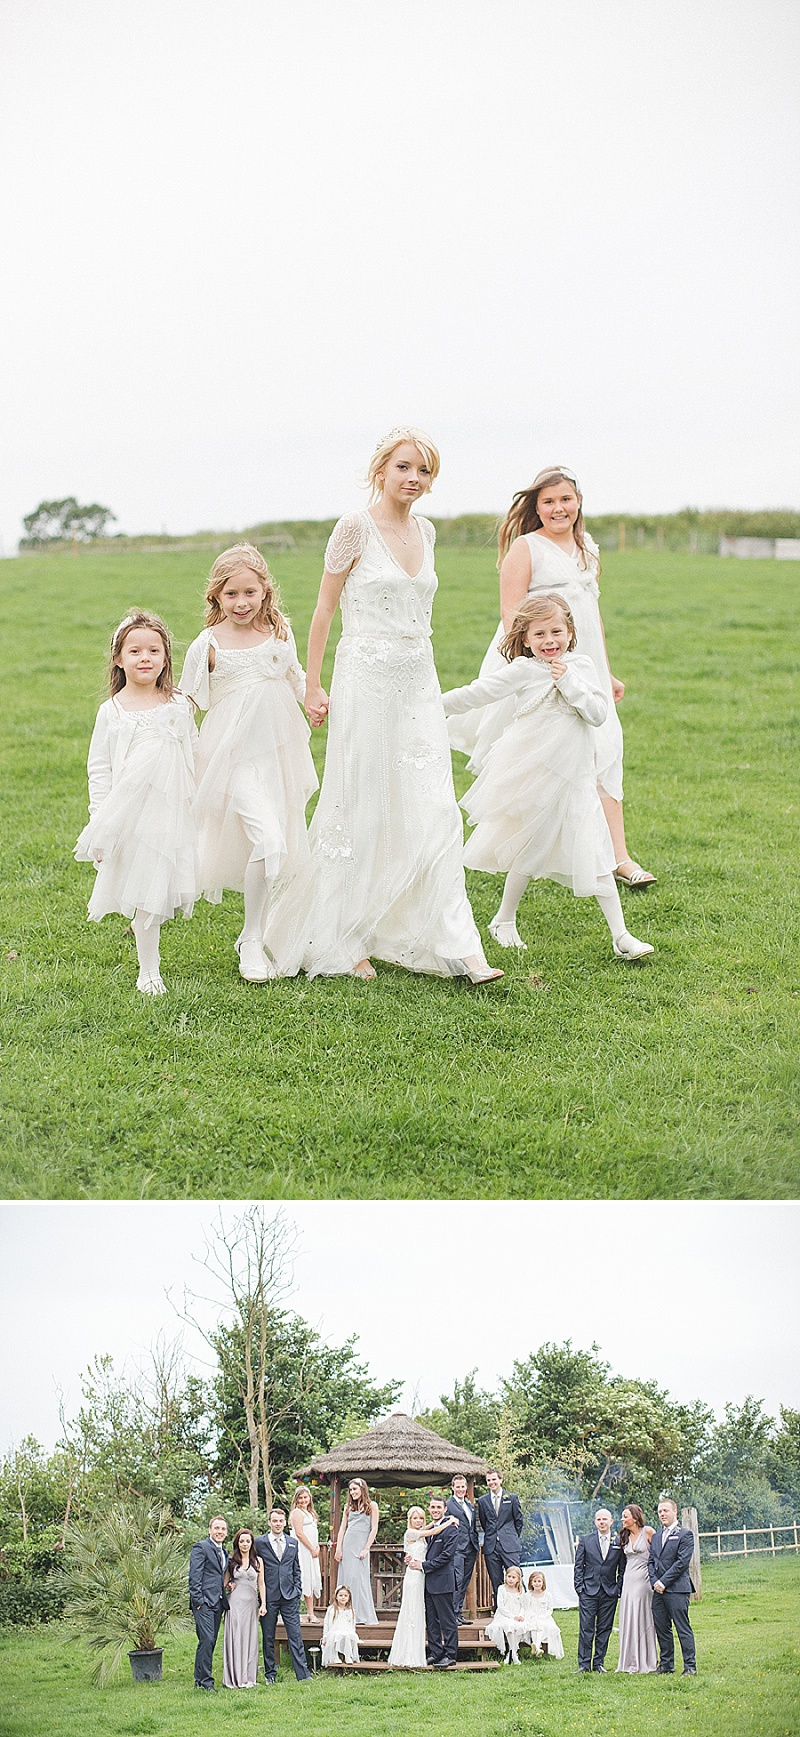 Coral Grey And Ivory Themed Tipi Wedding In Buckinghamshire With Bride In Eden By Jenny Packham And Acacia II Headpiece With Grey Ghost Bridesmaids Gowns And Groom In Bespoke Gieves And Hawkes Suit Images By Sarah Gawler 0010 Touches Of Coral.